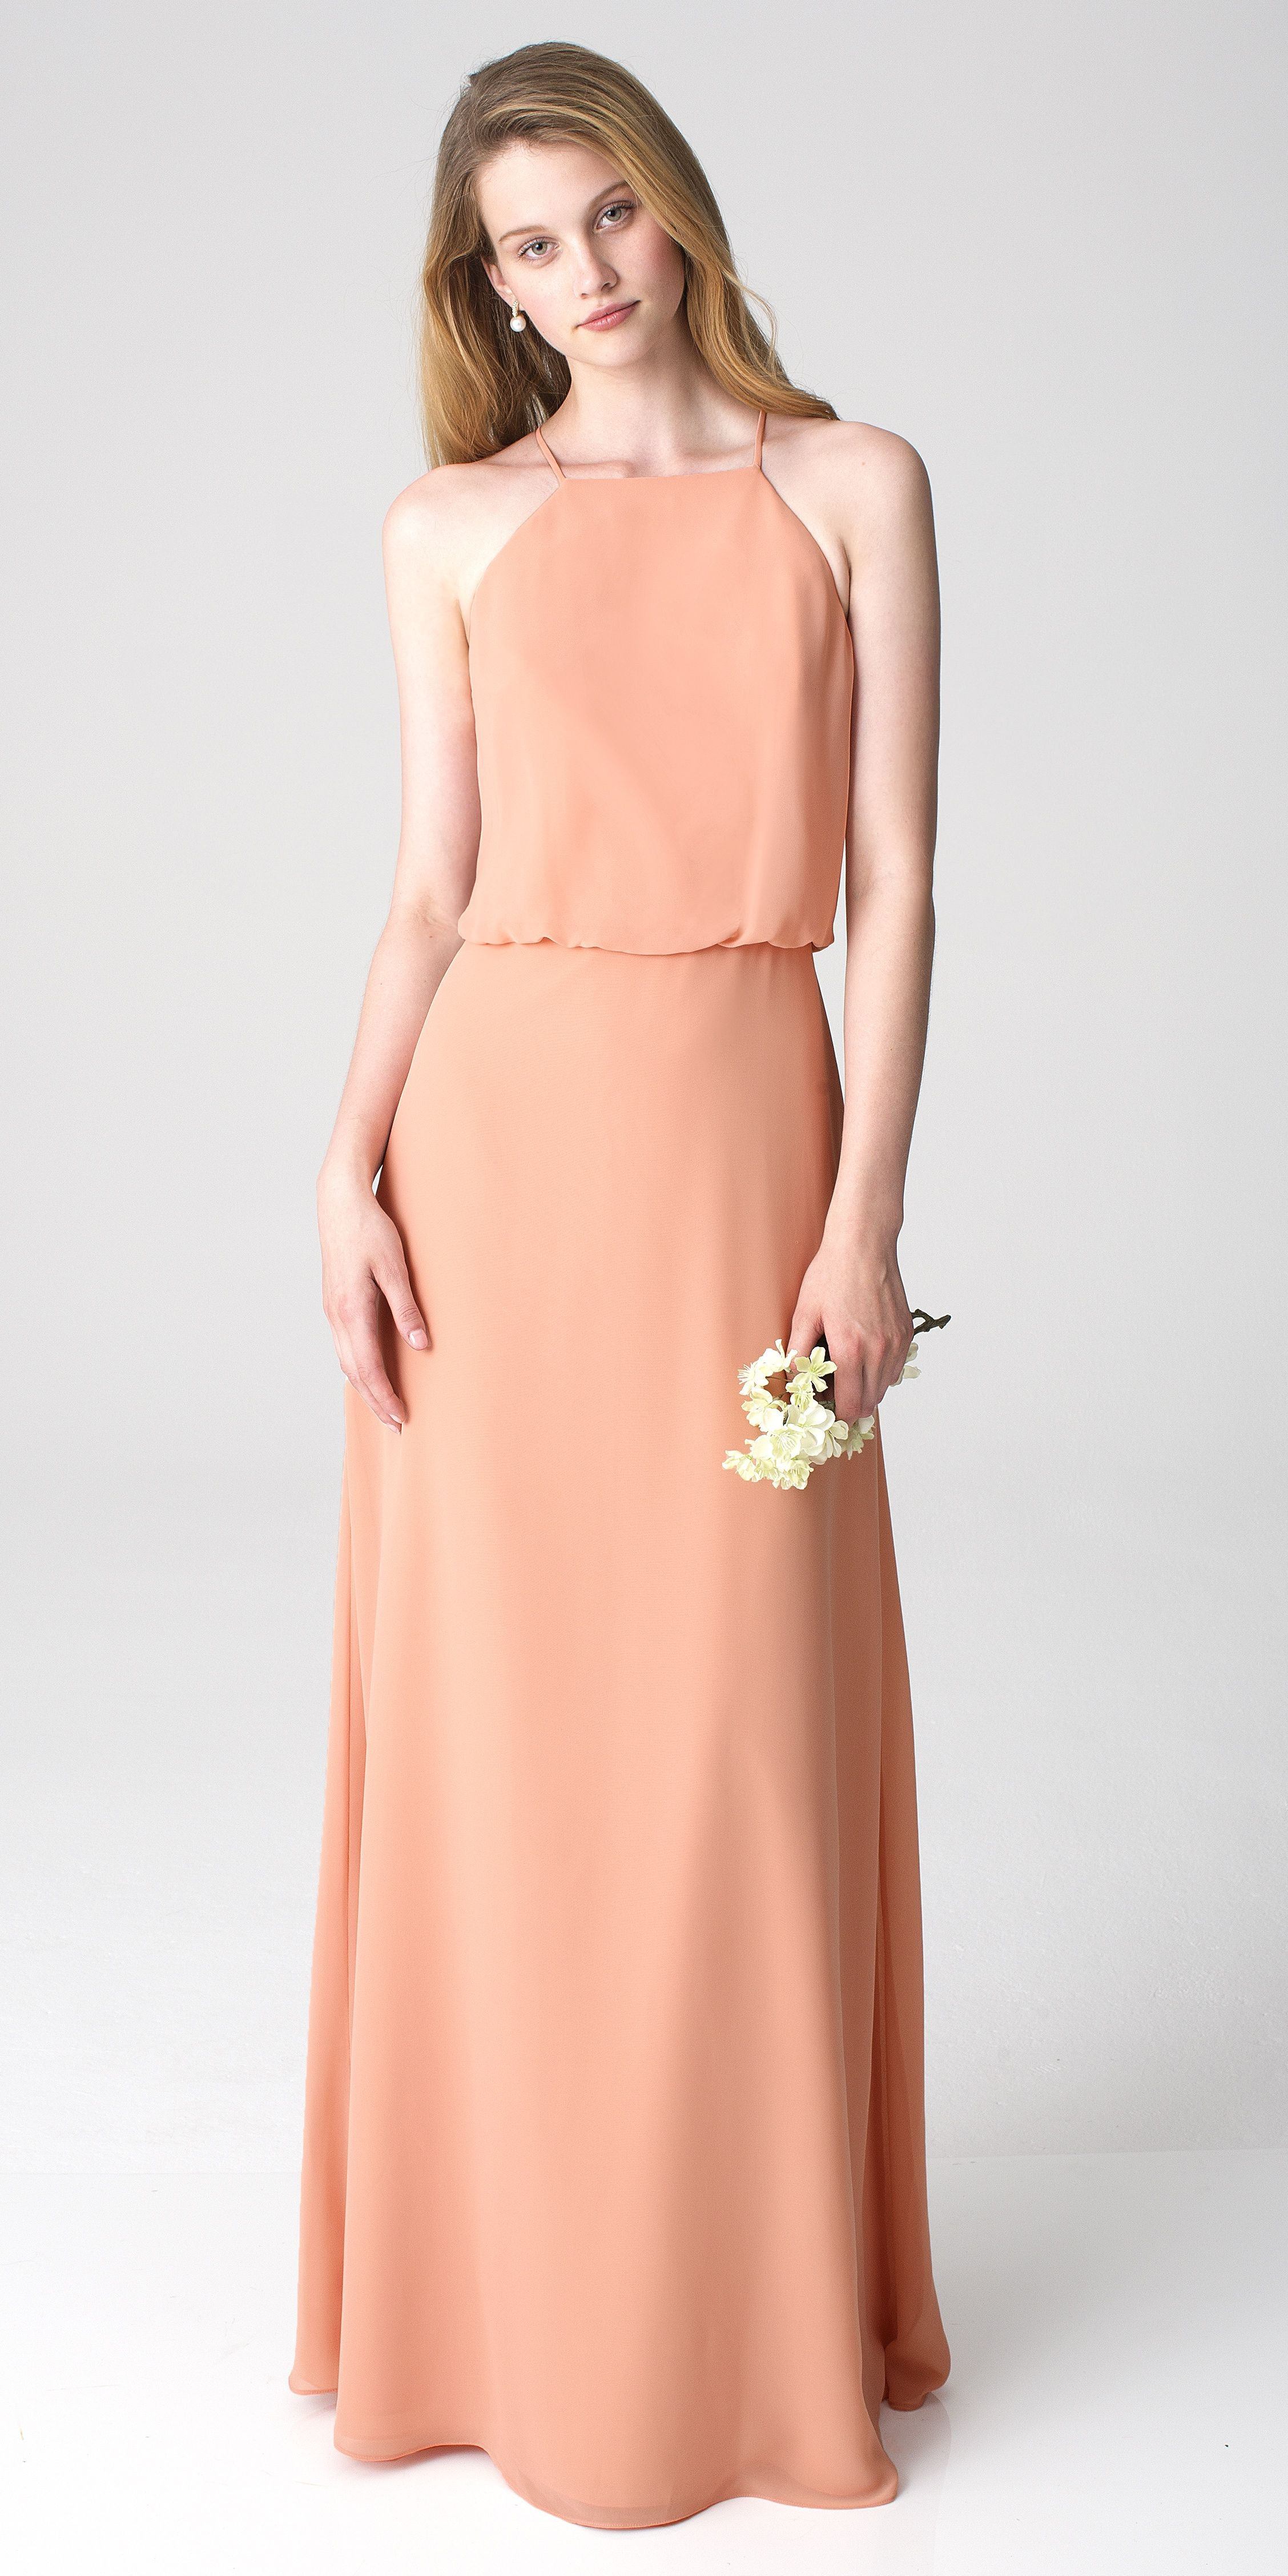 Bill levkoff style 1265 in peach bridesmaids dresses by bill bill levkoff style 1265 in peach jr bridesmaid dressesbill ombrellifo Images